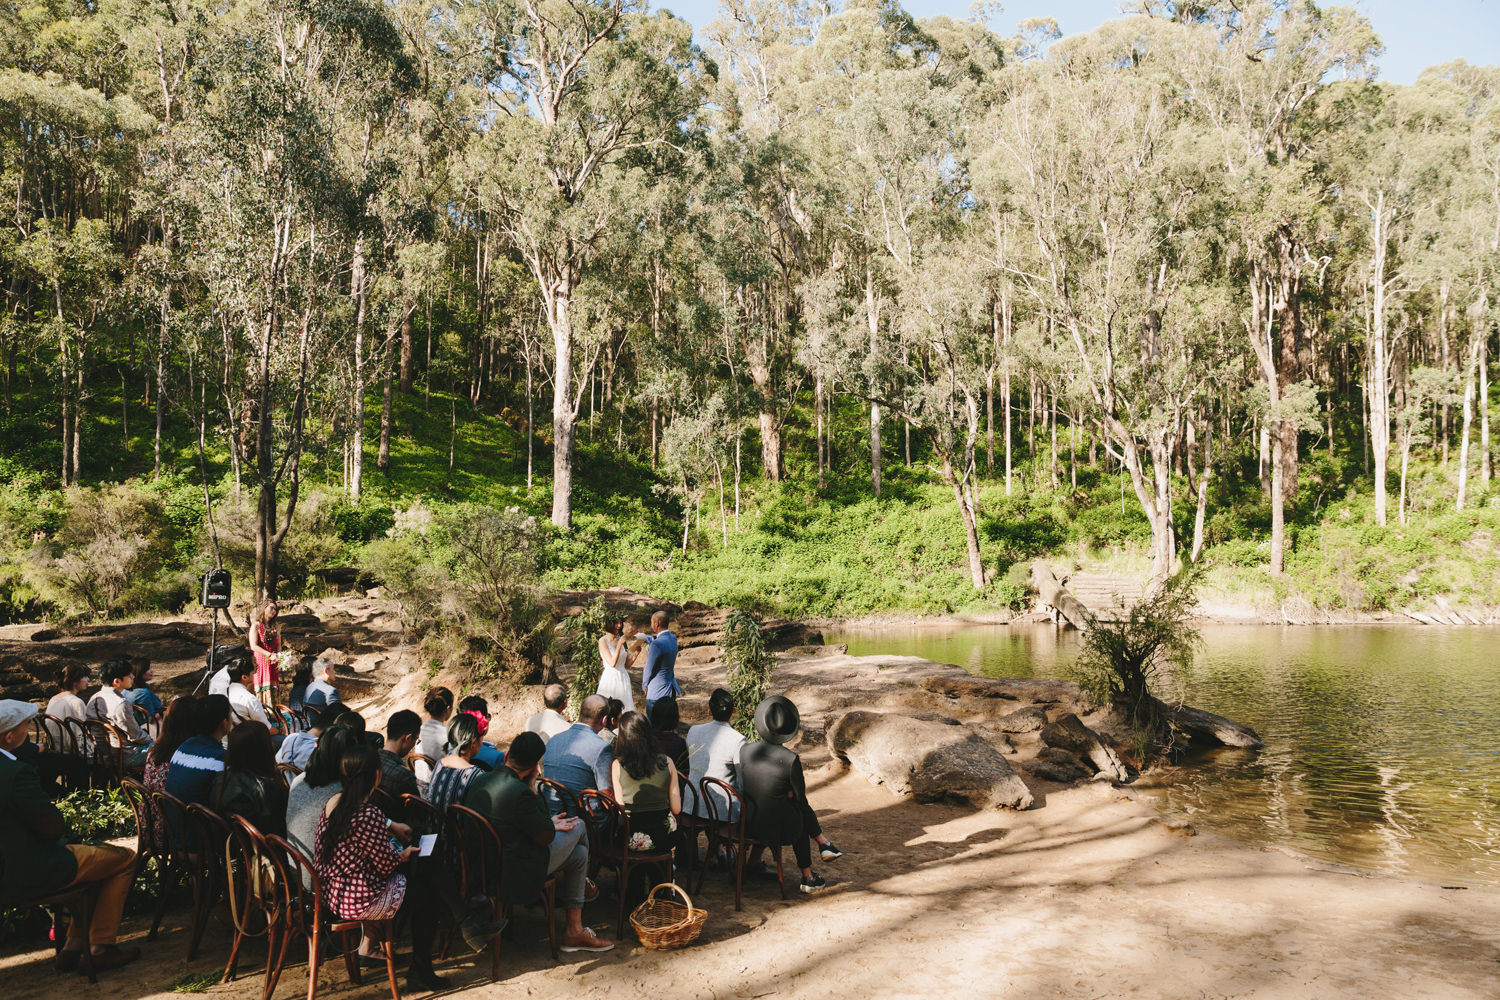 112-Barn_Wedding_Australia_Sam_Ting.jpg